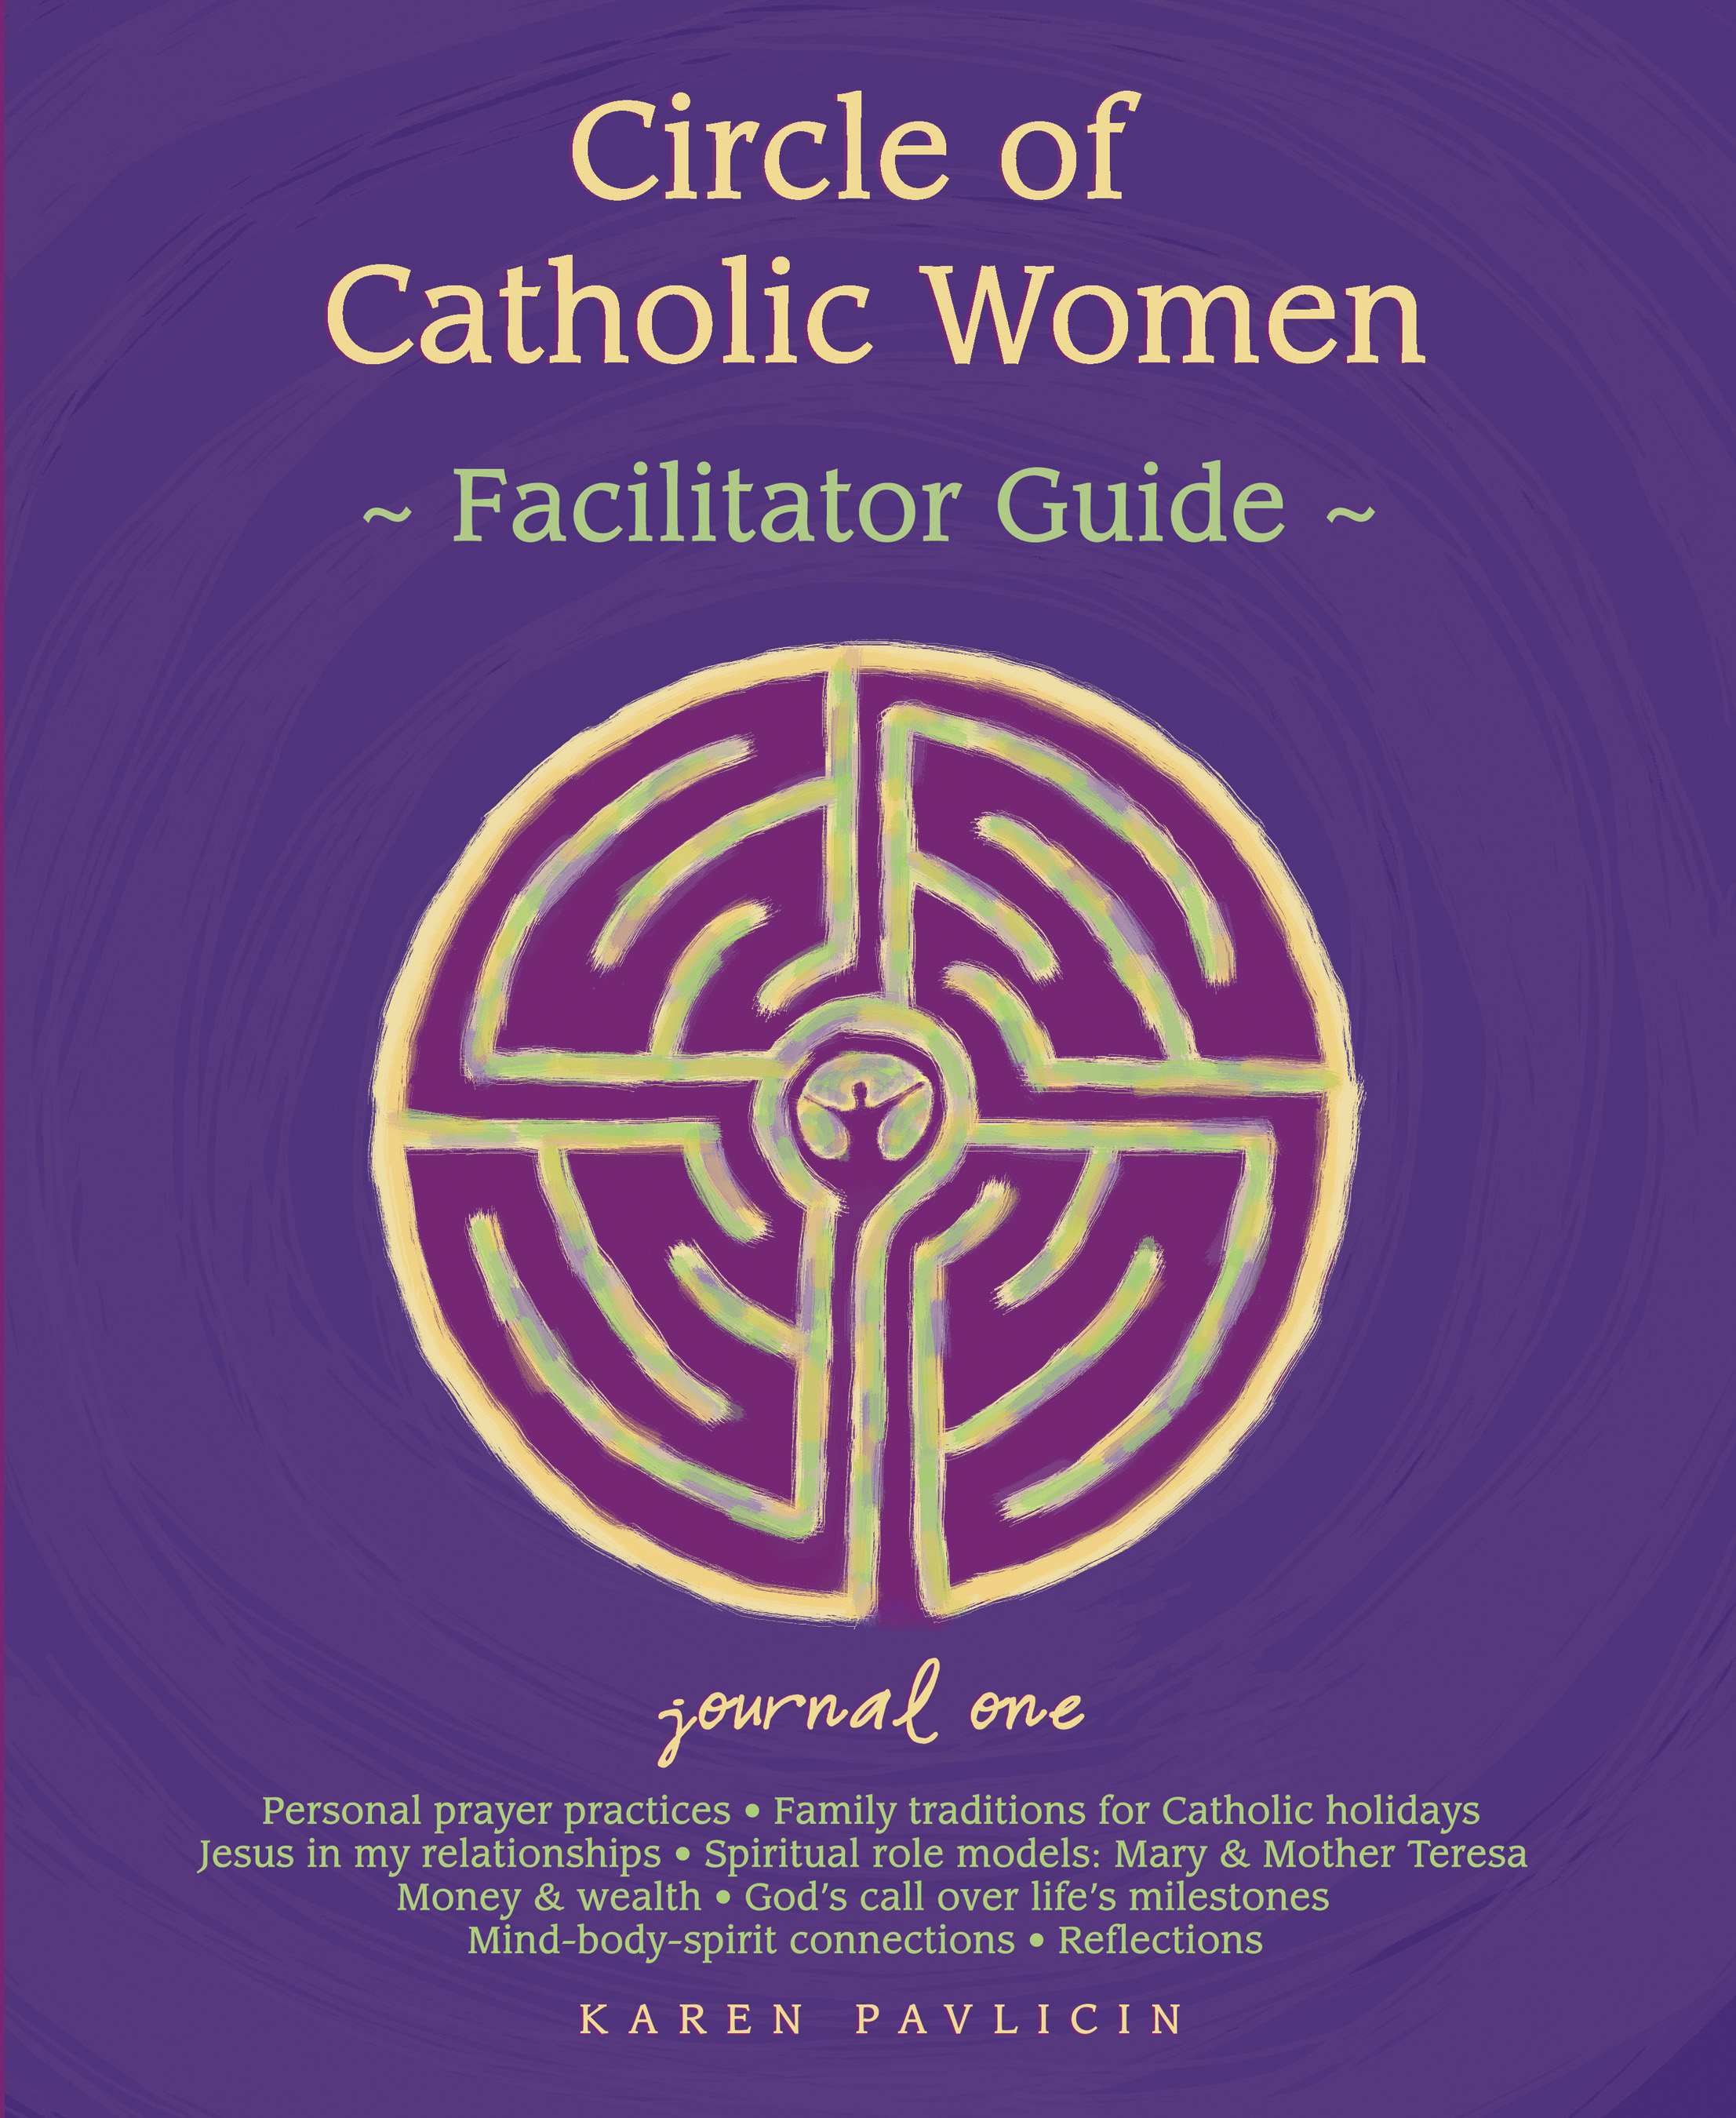 Circle of Catholic Women Journal One Facilitator Guide by Karen Pavlicin